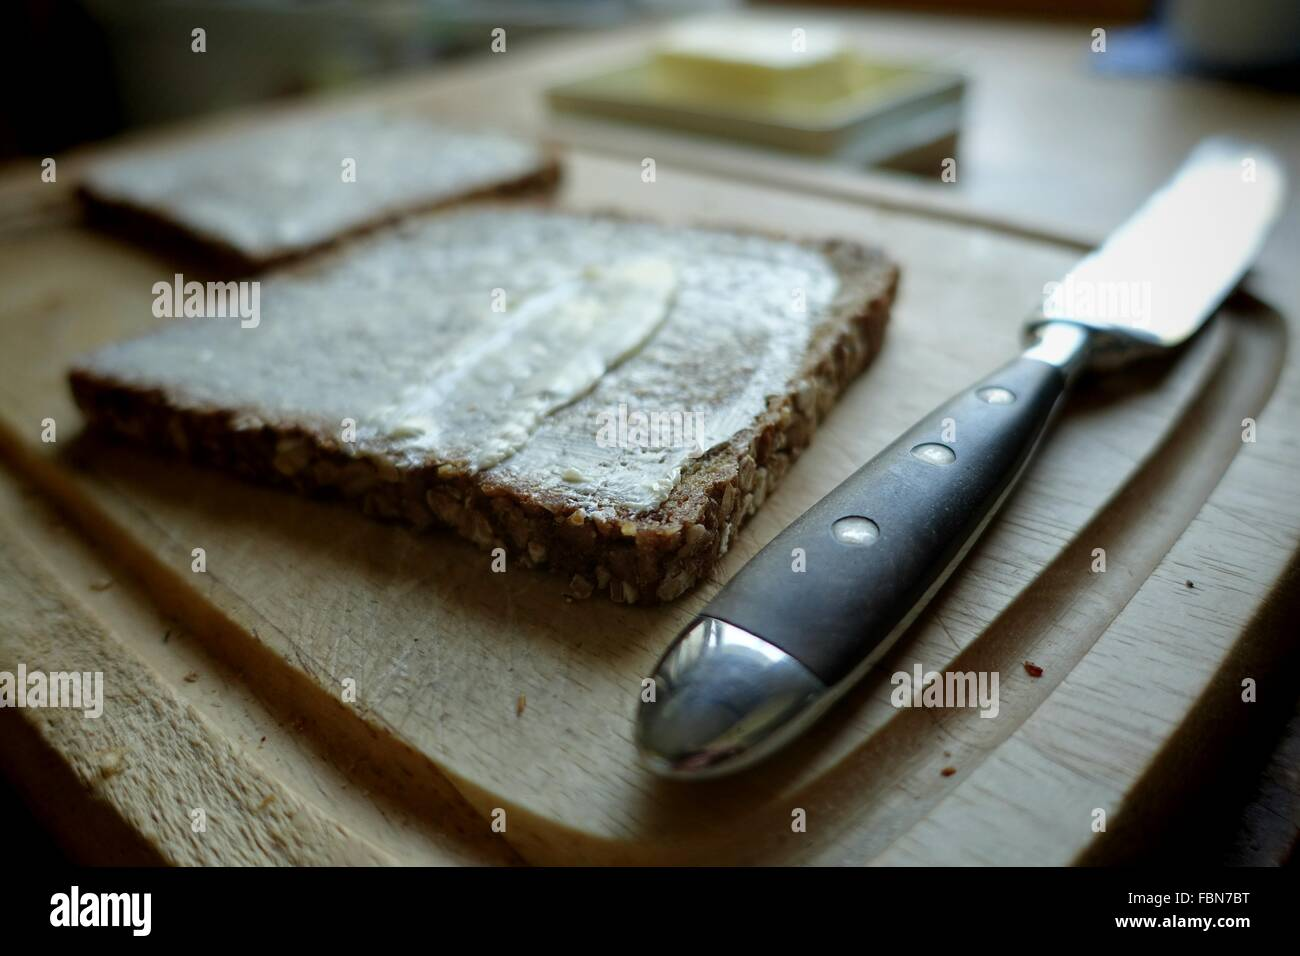 Knife By Bread With Butter On Cutting Board - Stock Image